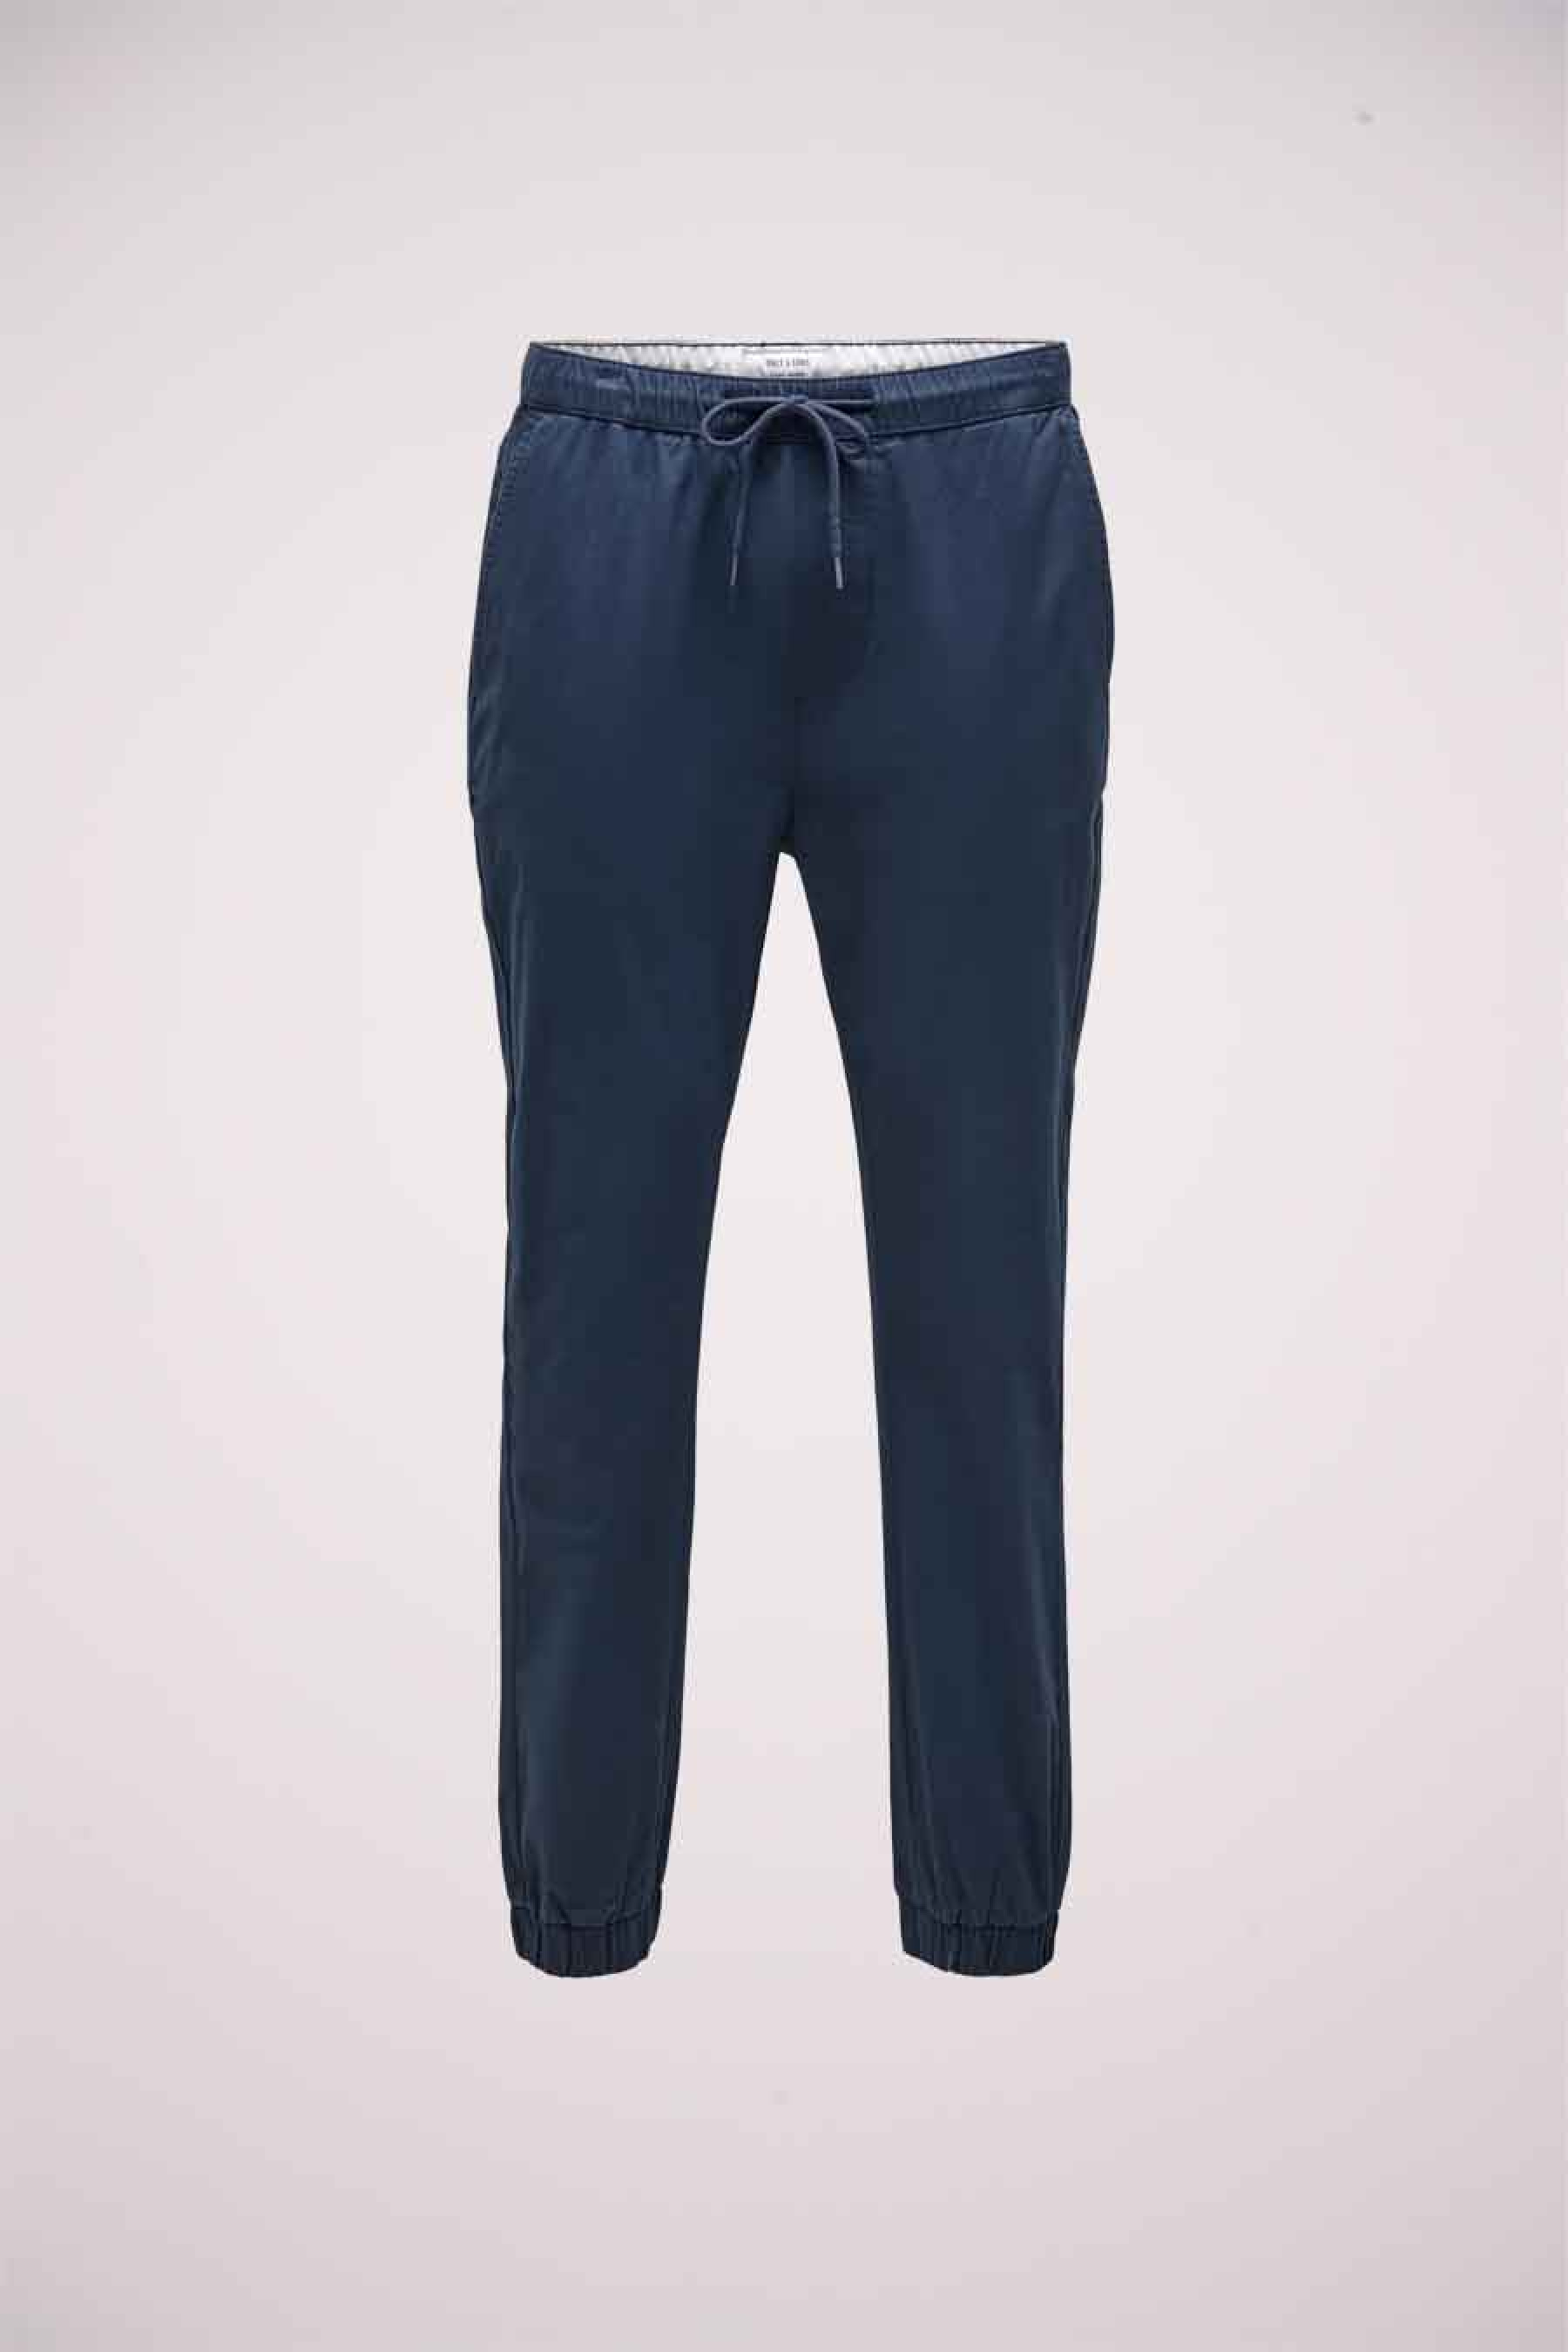 ONLY & SONS Chino, Blauw, Heren, Maat: L/M/S/XL